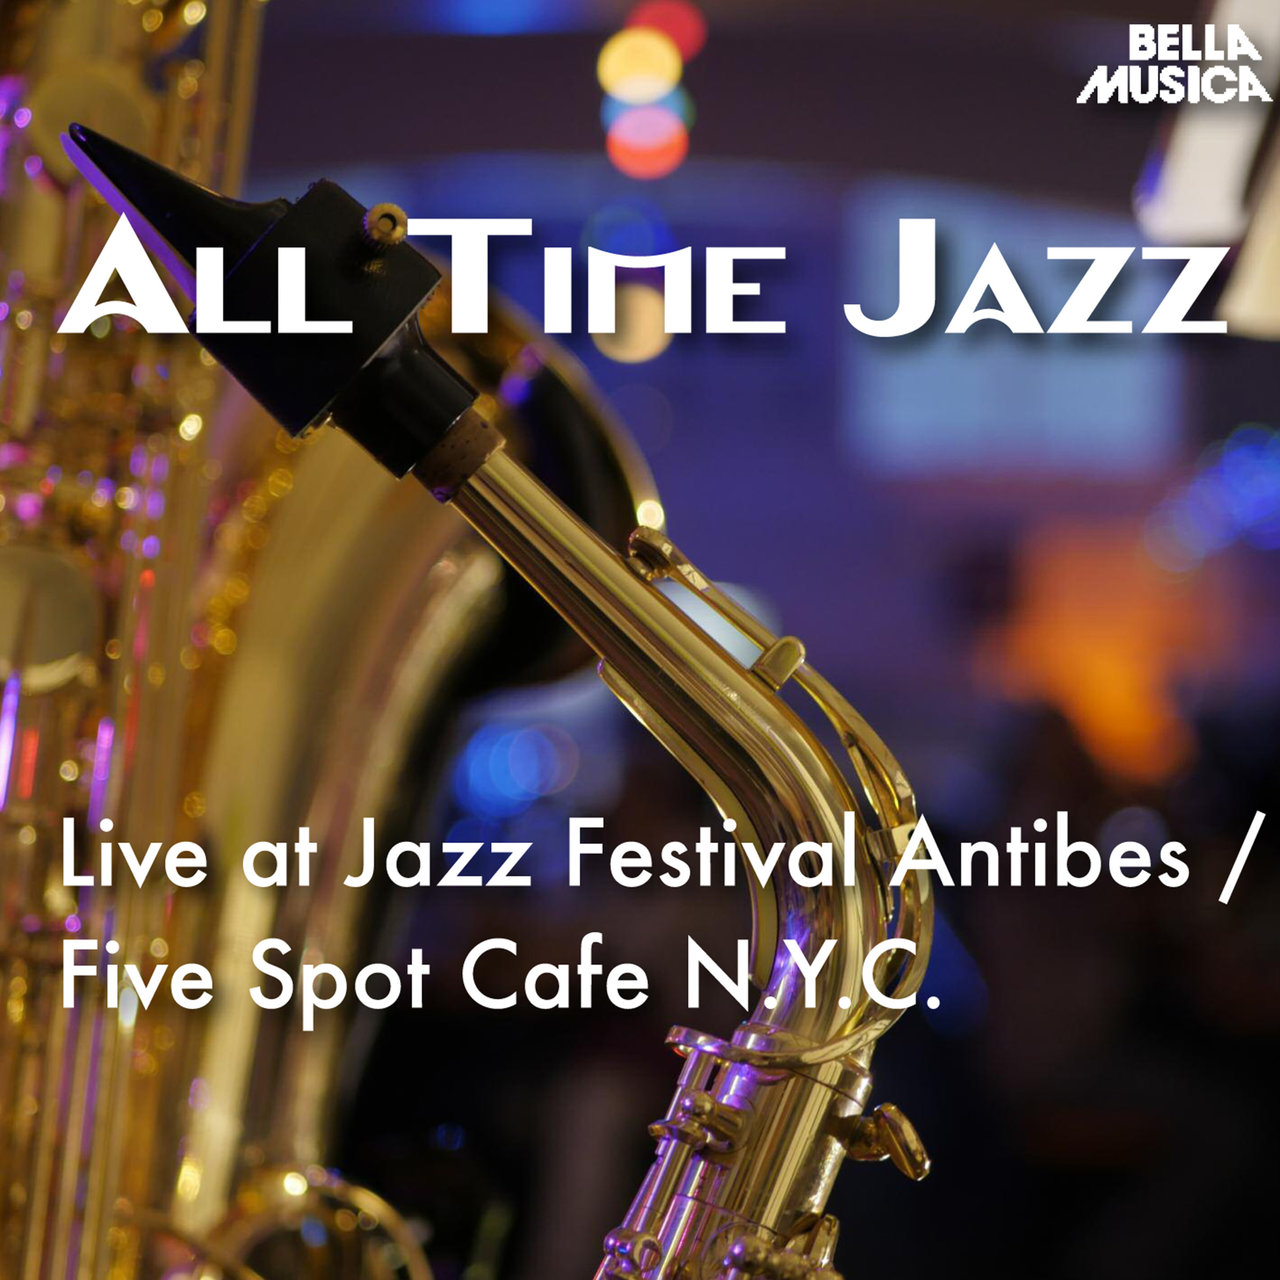 All Time Jazz: Live at Jazz Festival Antibes / Five Spot Cafe N.Y.C.